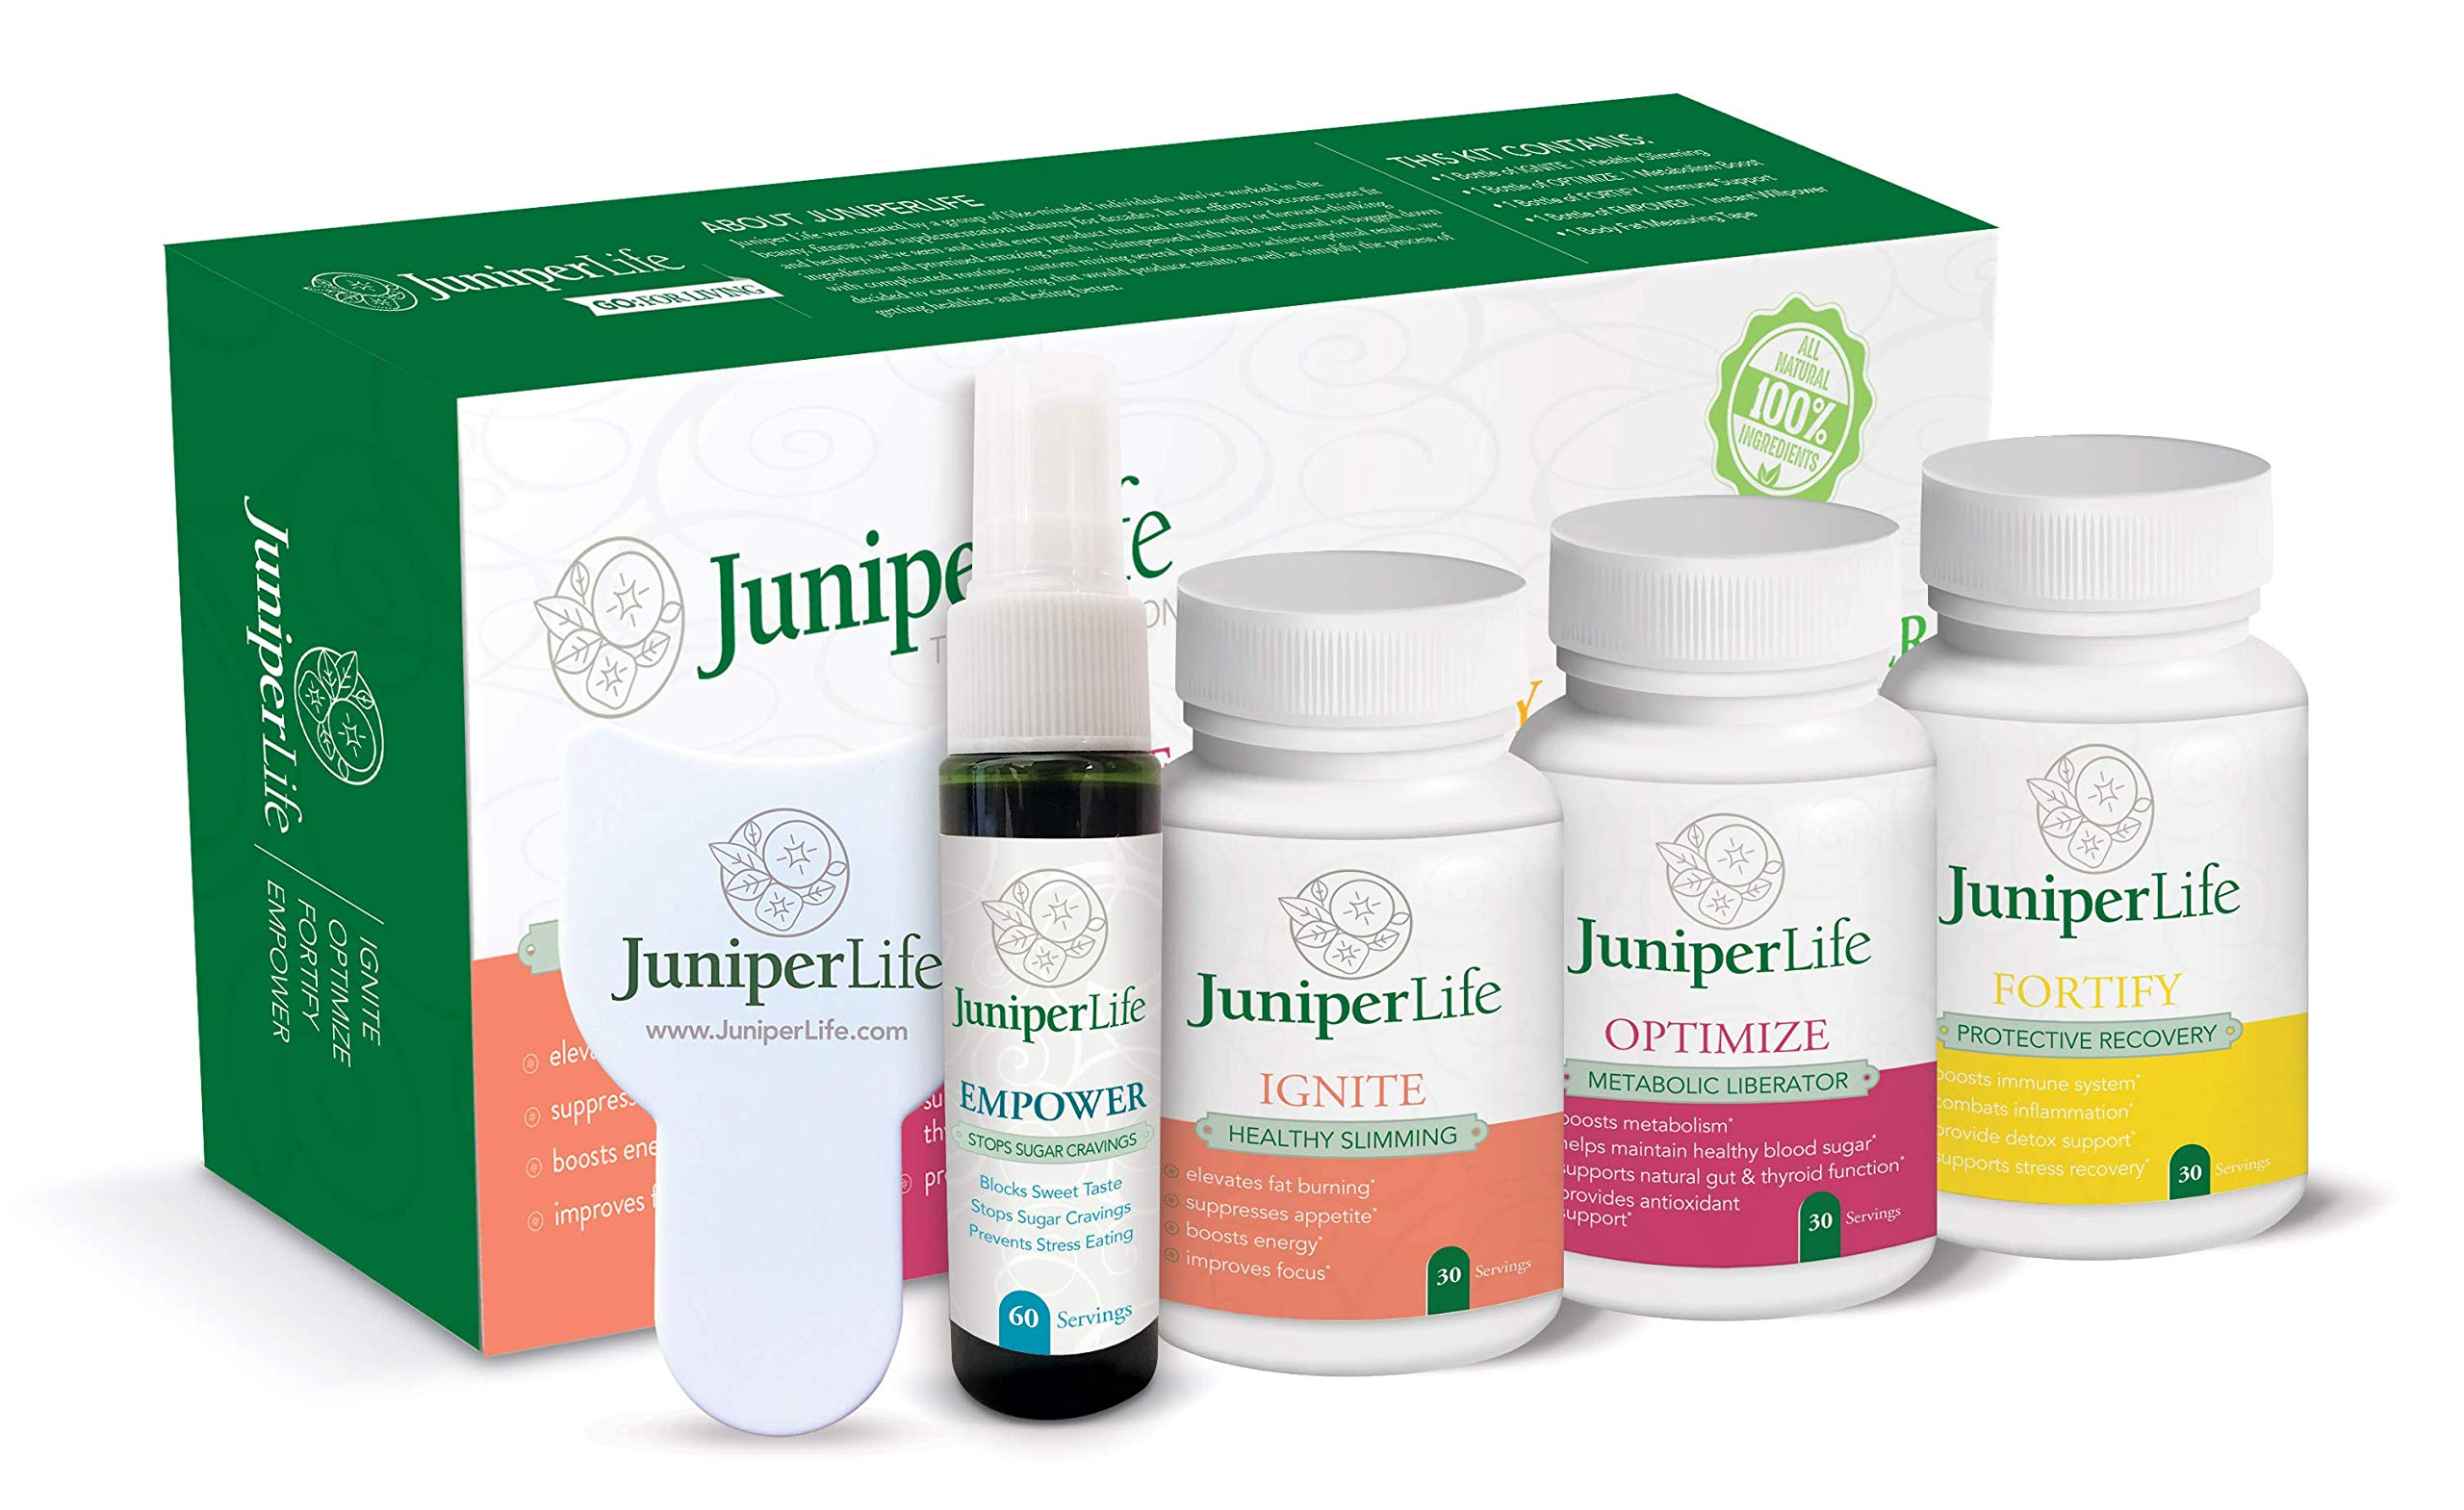 Transformation Program - OPTIMIZE, Ignite, Fortify, Empower - Weight Loss, Leaky Gut, Boost Energy & Metabolism, Control Glucose, Stop Sugar Cravings by JuniperLIfe